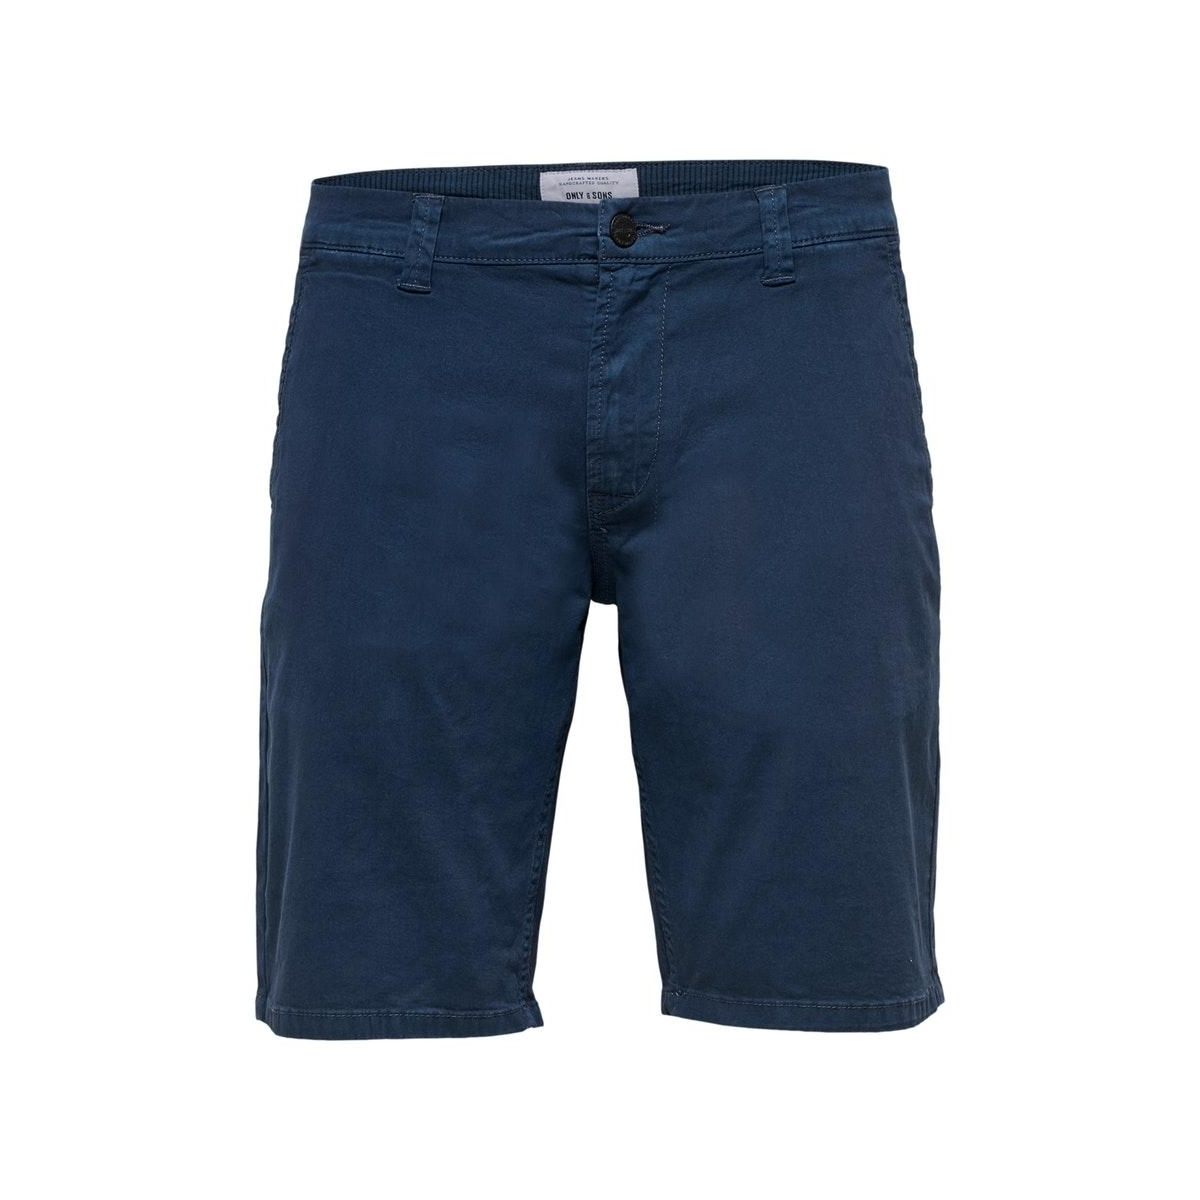 onsholm chino shorts  pk 2174 noos 22012174 only & sons korte broek dress blues